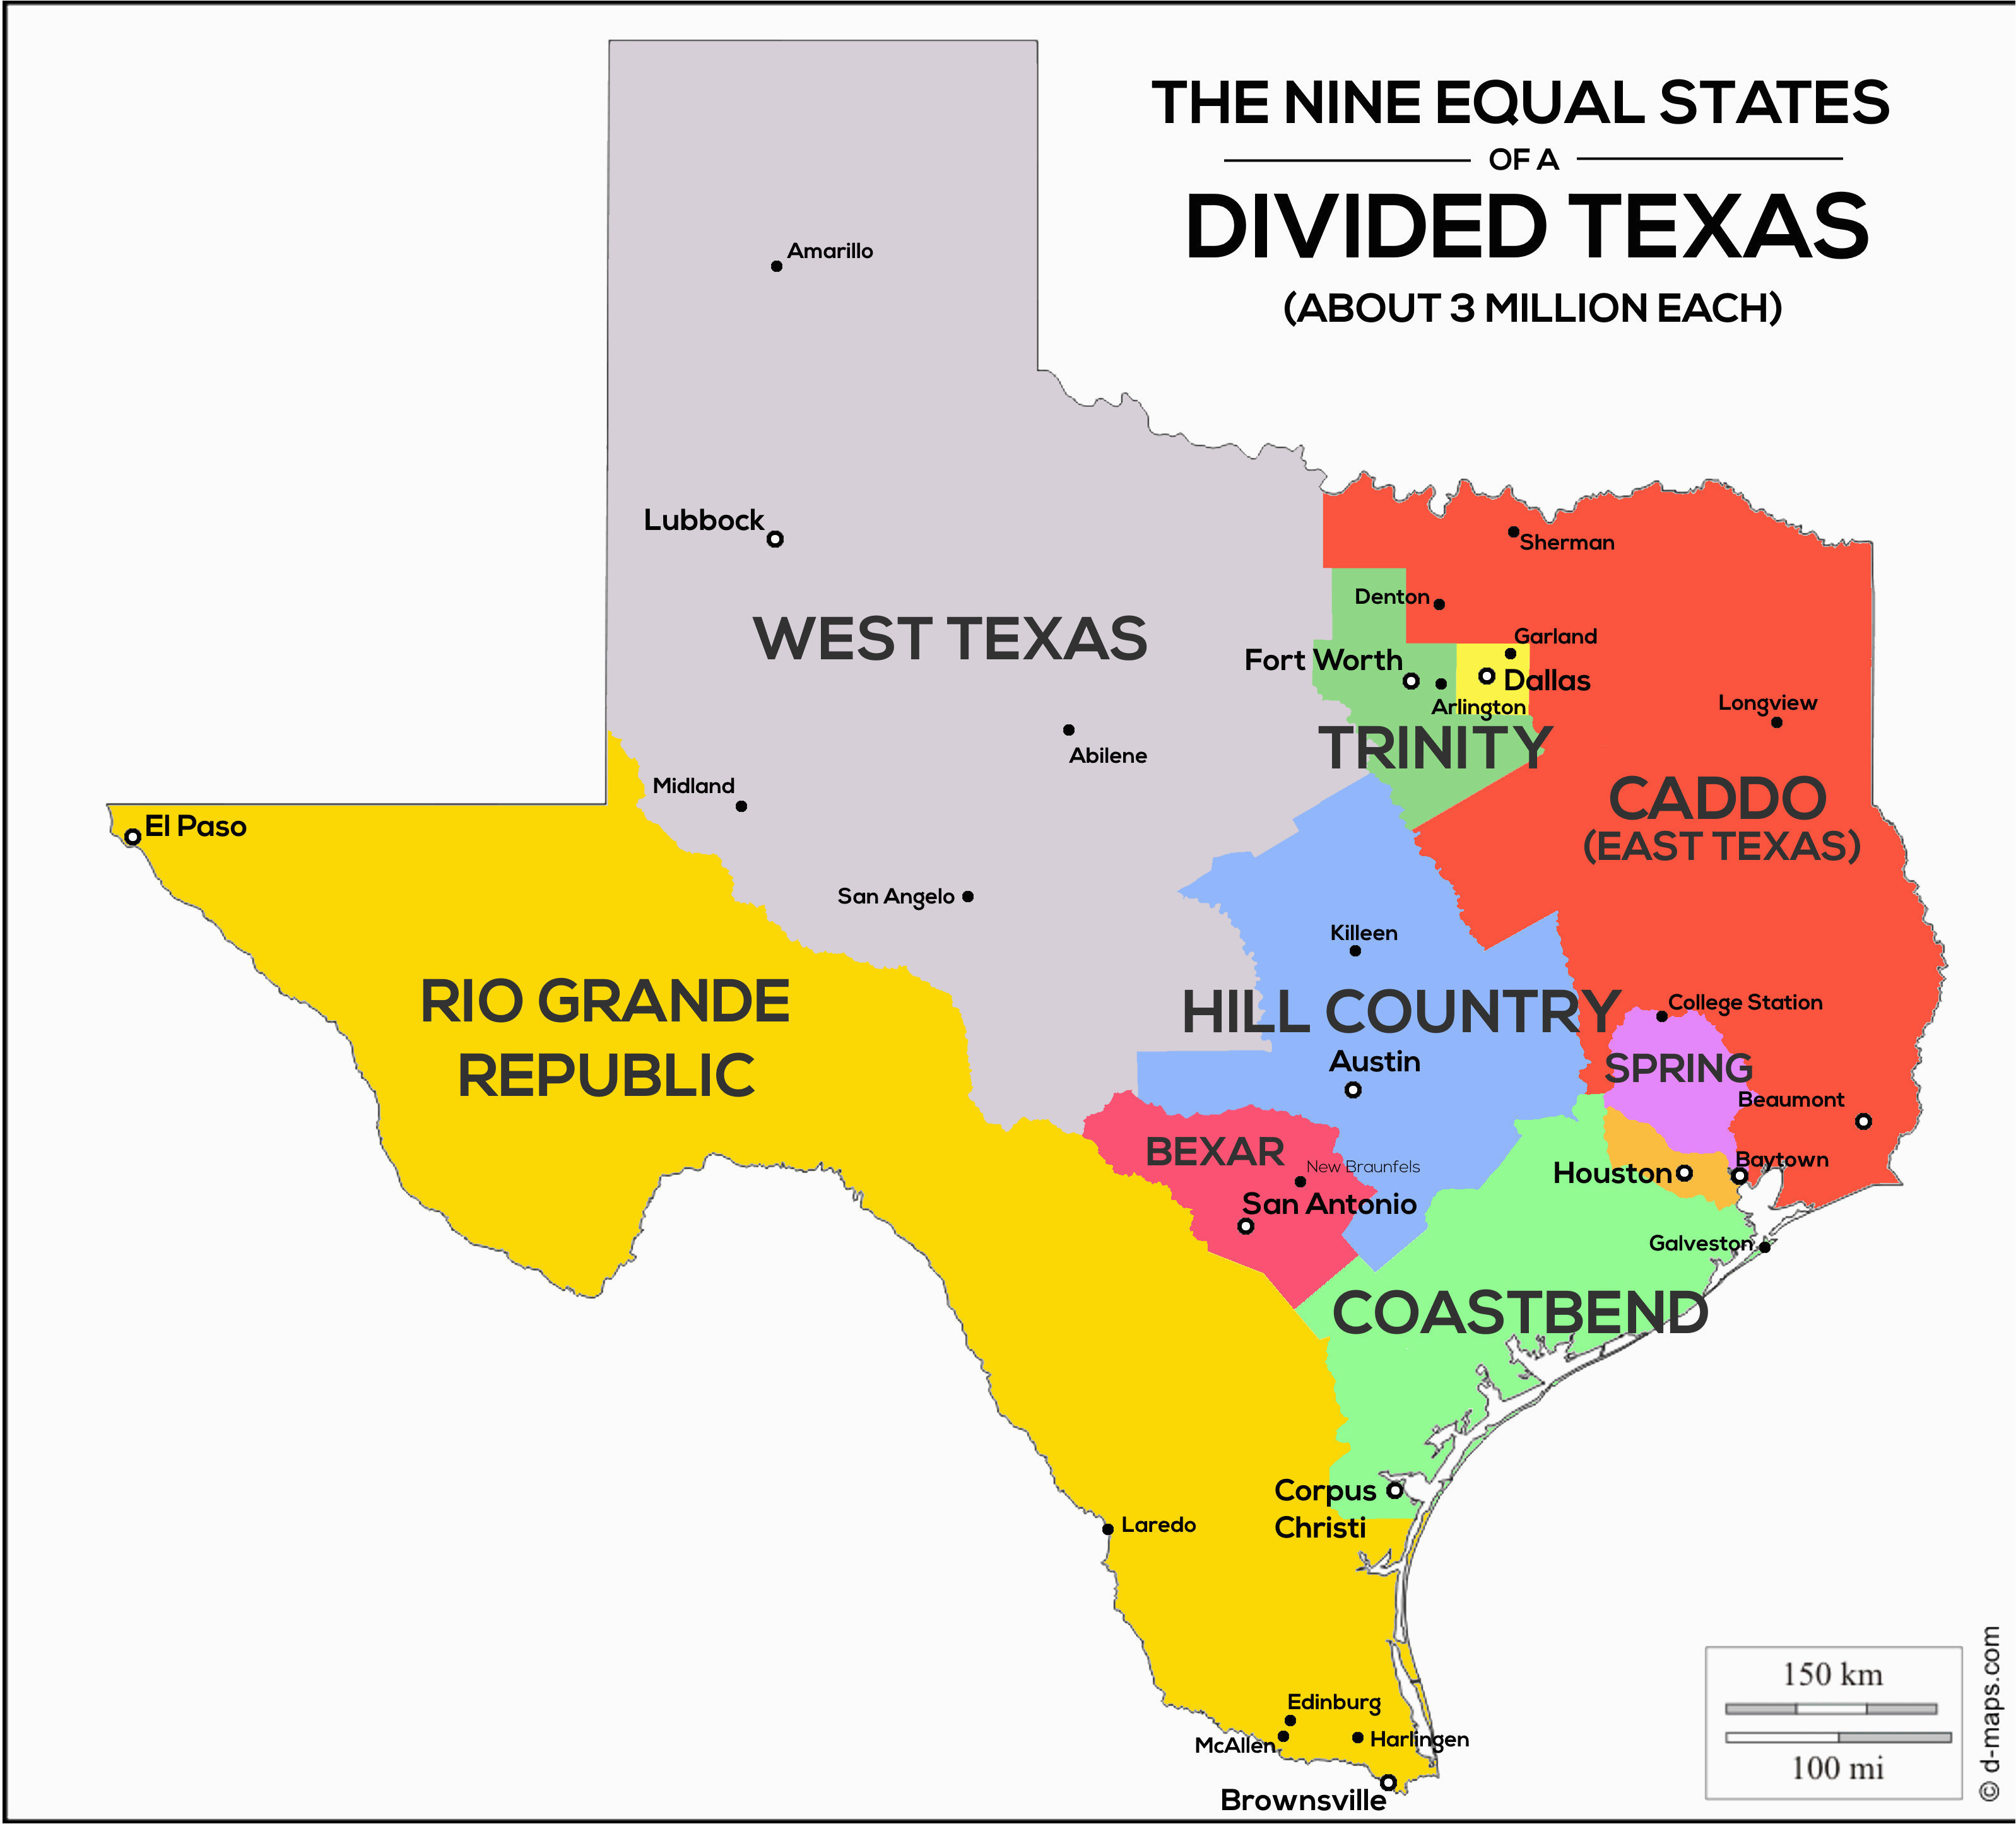 Where is Brownsville Texas On the Map Austin Tx Map ... on manchester new hampshire on map, fredericksburg virginia on map, delray beach florida on map, jackson mississippi on map, california on map, brownsville pennsylvania map, fayetteville north carolina on map, brownsville texas border, akron ohio on map, elizabeth new jersey on map, tulsa oklahoma on map, brownsville oregon on map, bloomington indiana on map, brownsville tx, buffalo new york on map, san antonio texas map, richmond virginia on map, yonkers new york on map, des moines iowa on map, cleveland tennessee on map,